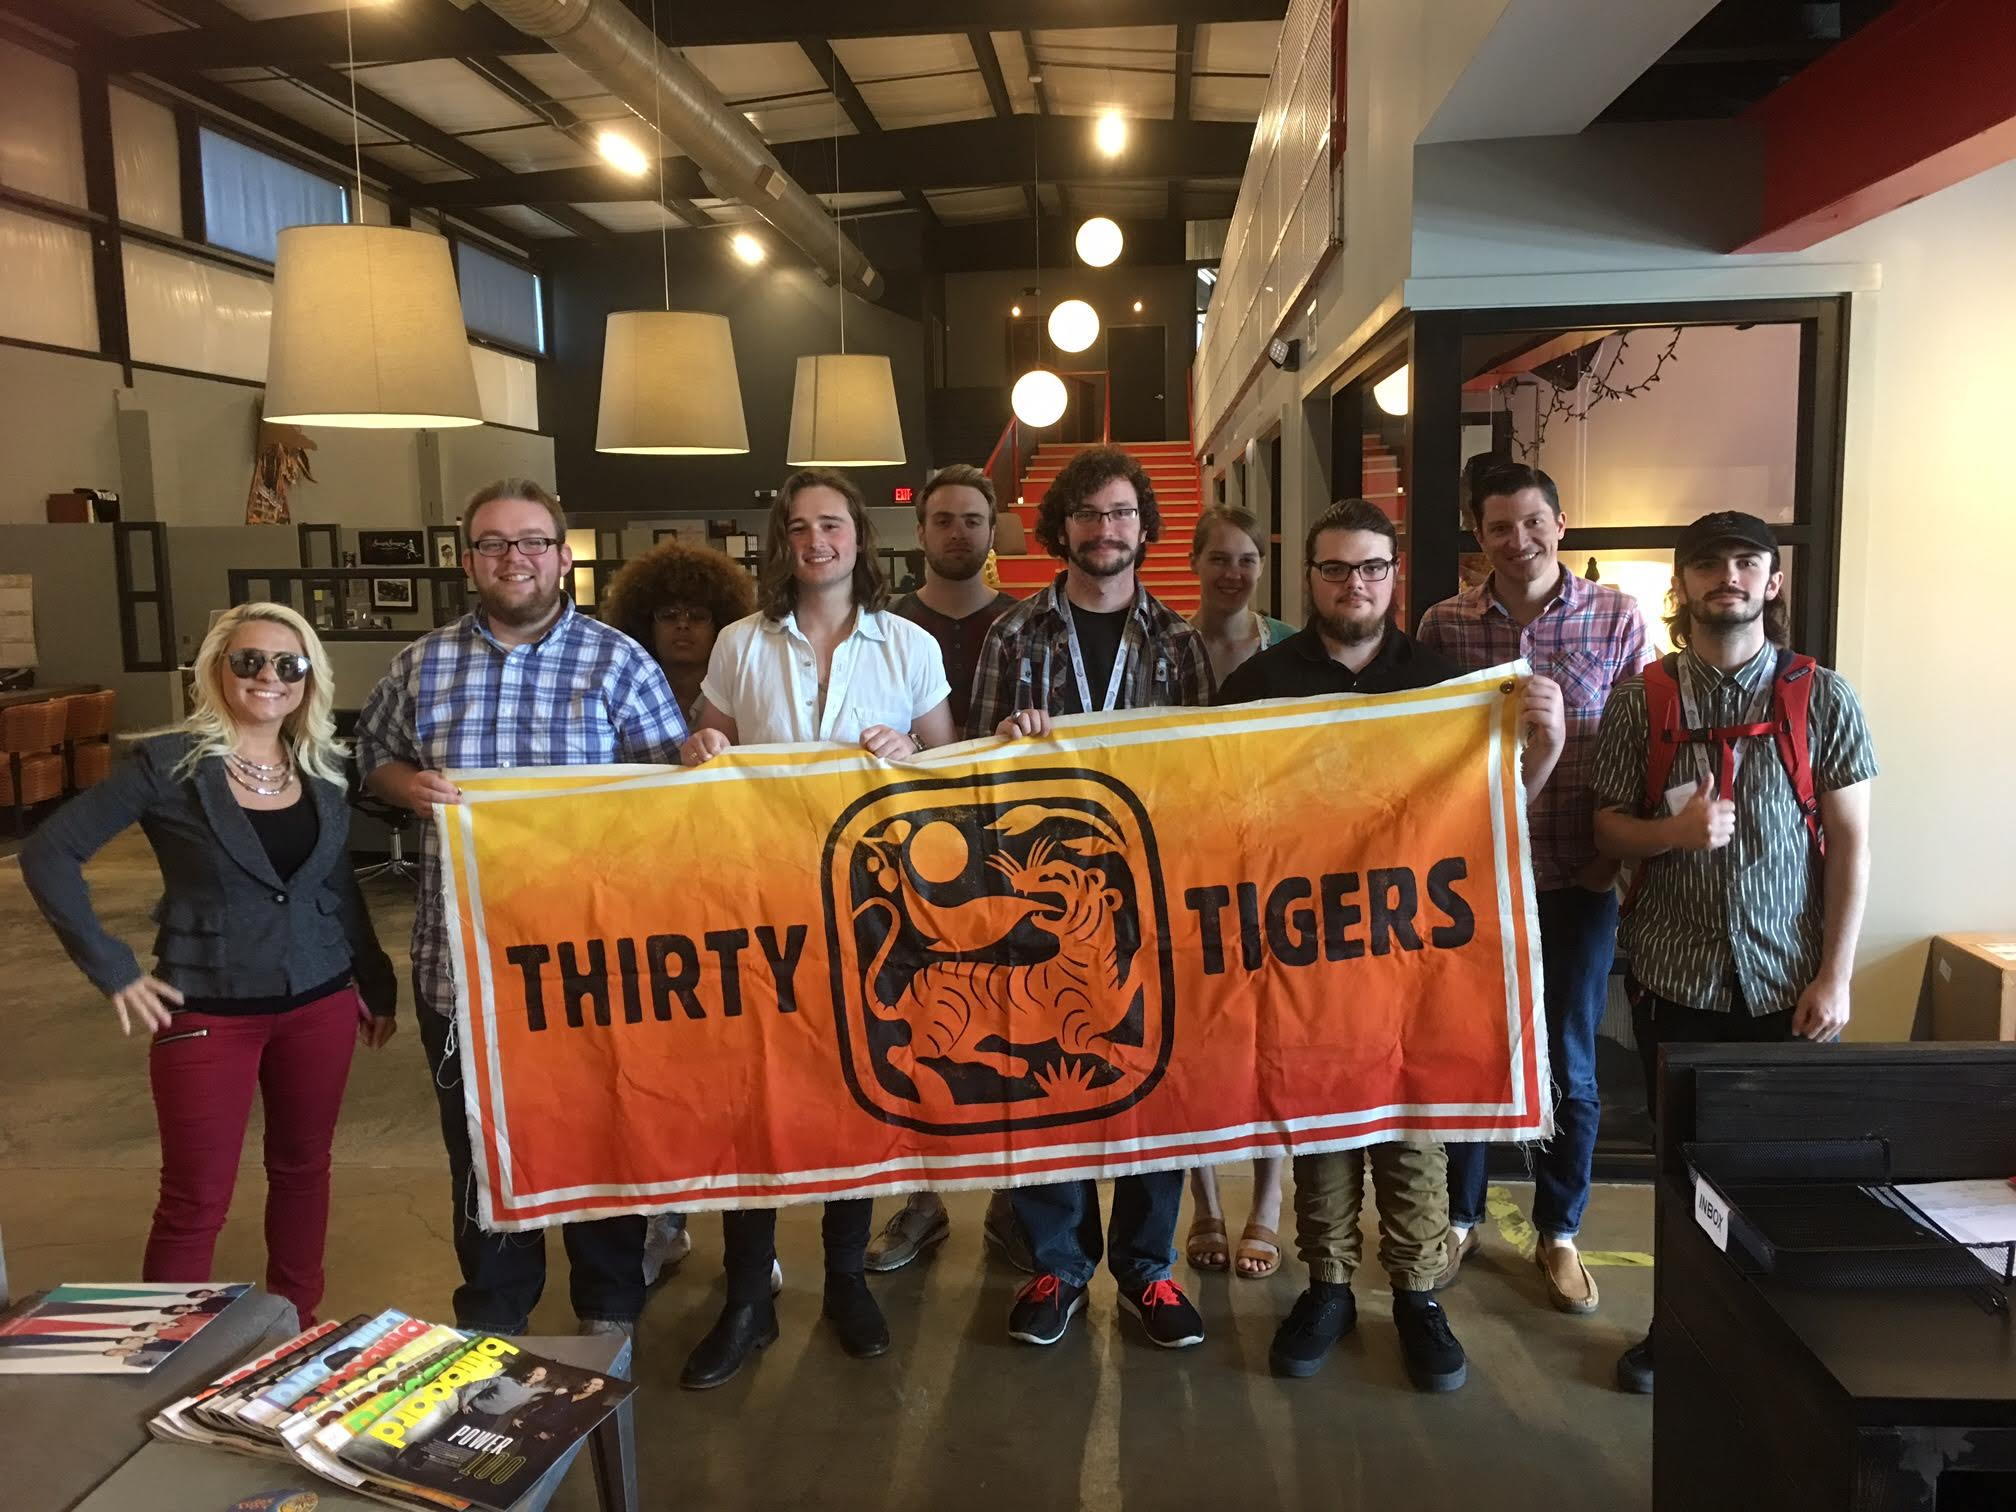 THIRTY TIGERS in Nashville, TN.